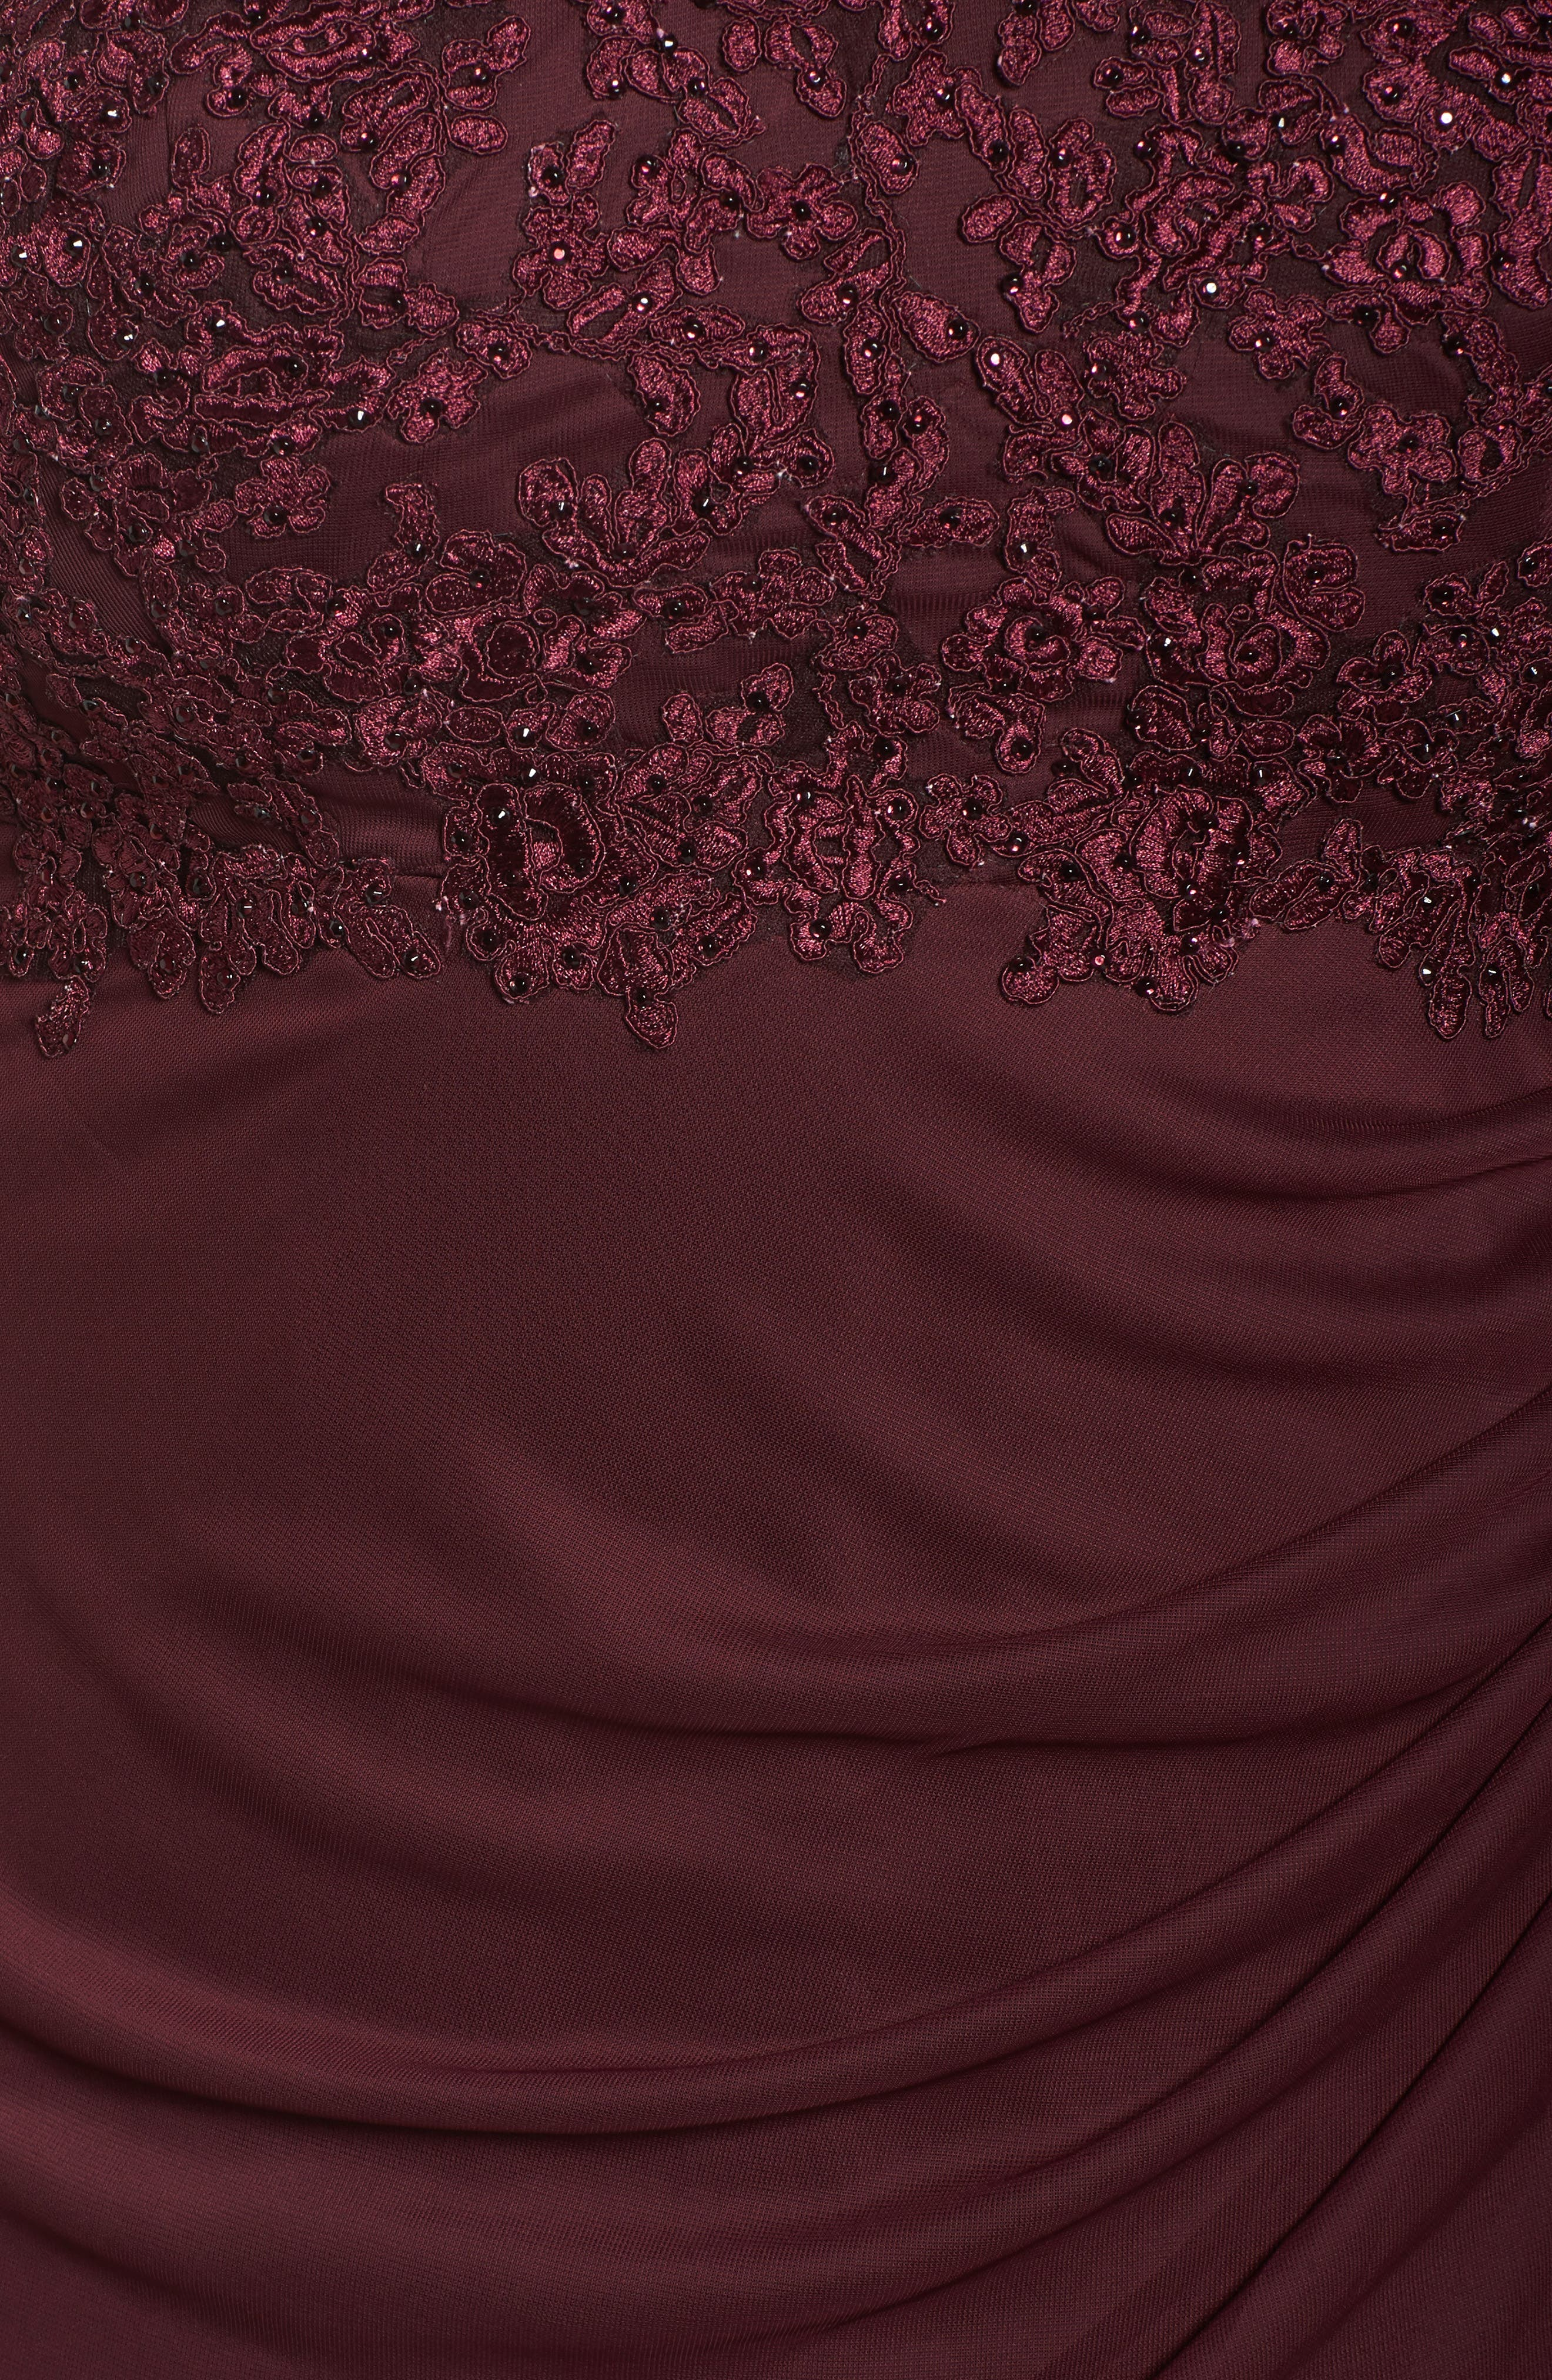 Embellished Ruched Jersey Gown,                             Alternate thumbnail 5, color,                             935